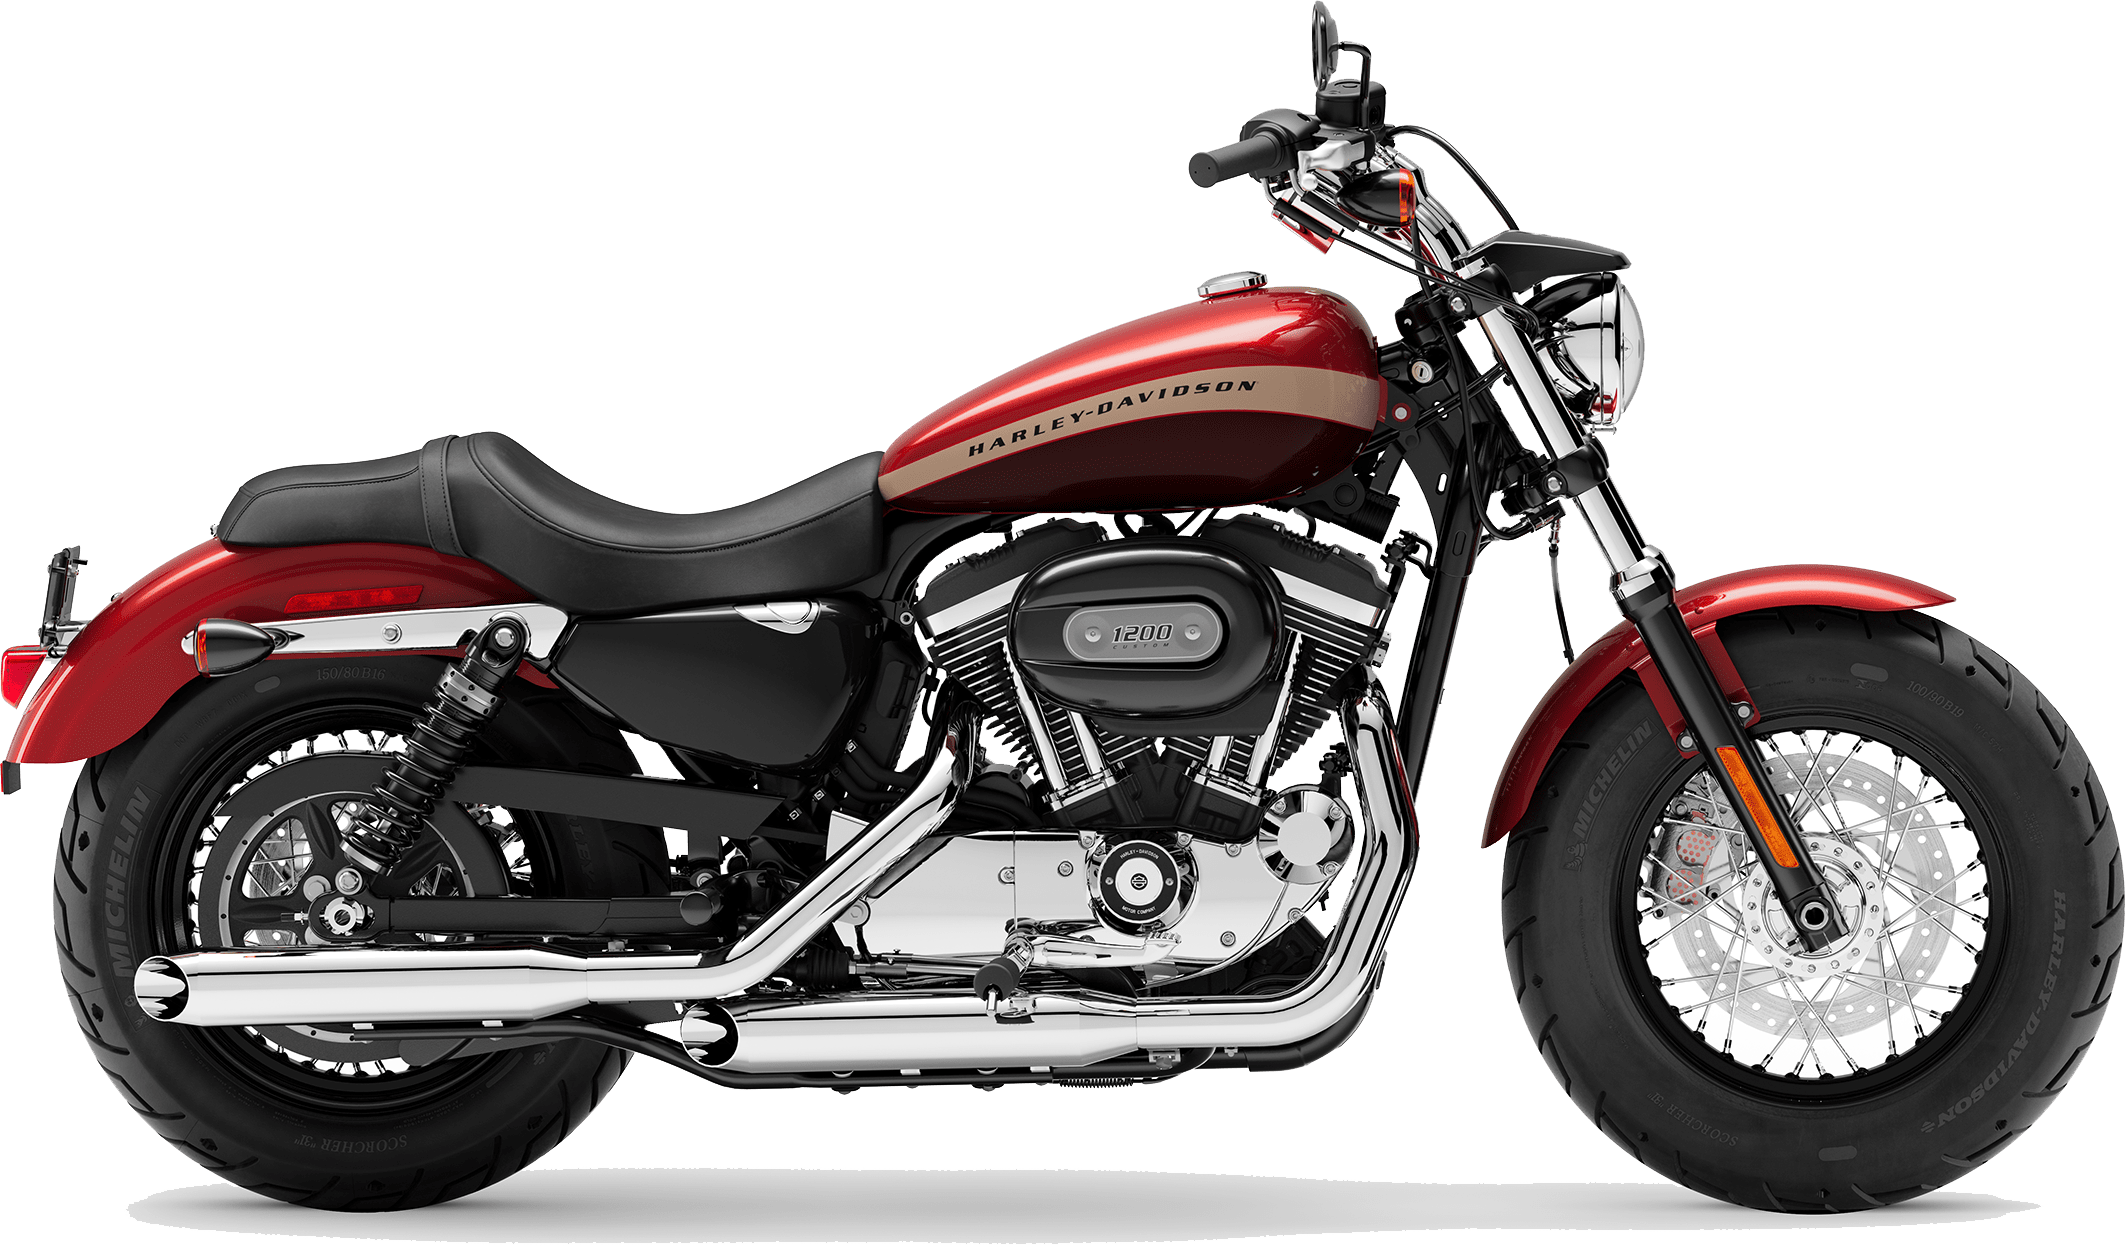 2019 Harley-Davidson H-D Sportster® 1200 Custom Wicked Red Twisted Cherry